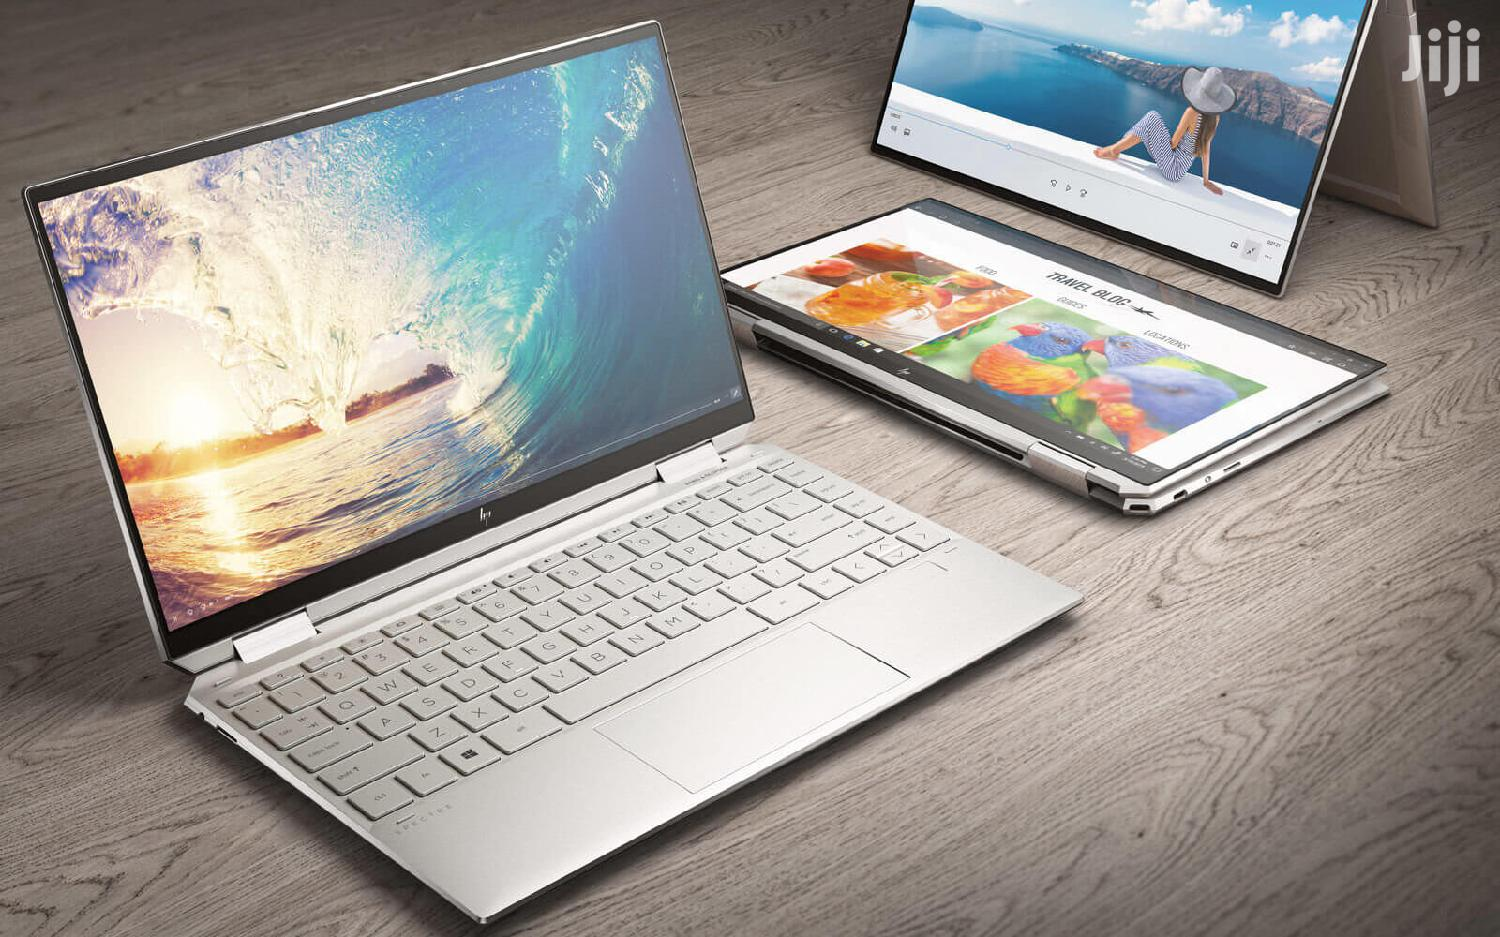 New Laptop HP Spectre X360 15t 16GB Intel Core I7 SSD 512GB | Laptops & Computers for sale in Accra Metropolitan, Greater Accra, Ghana